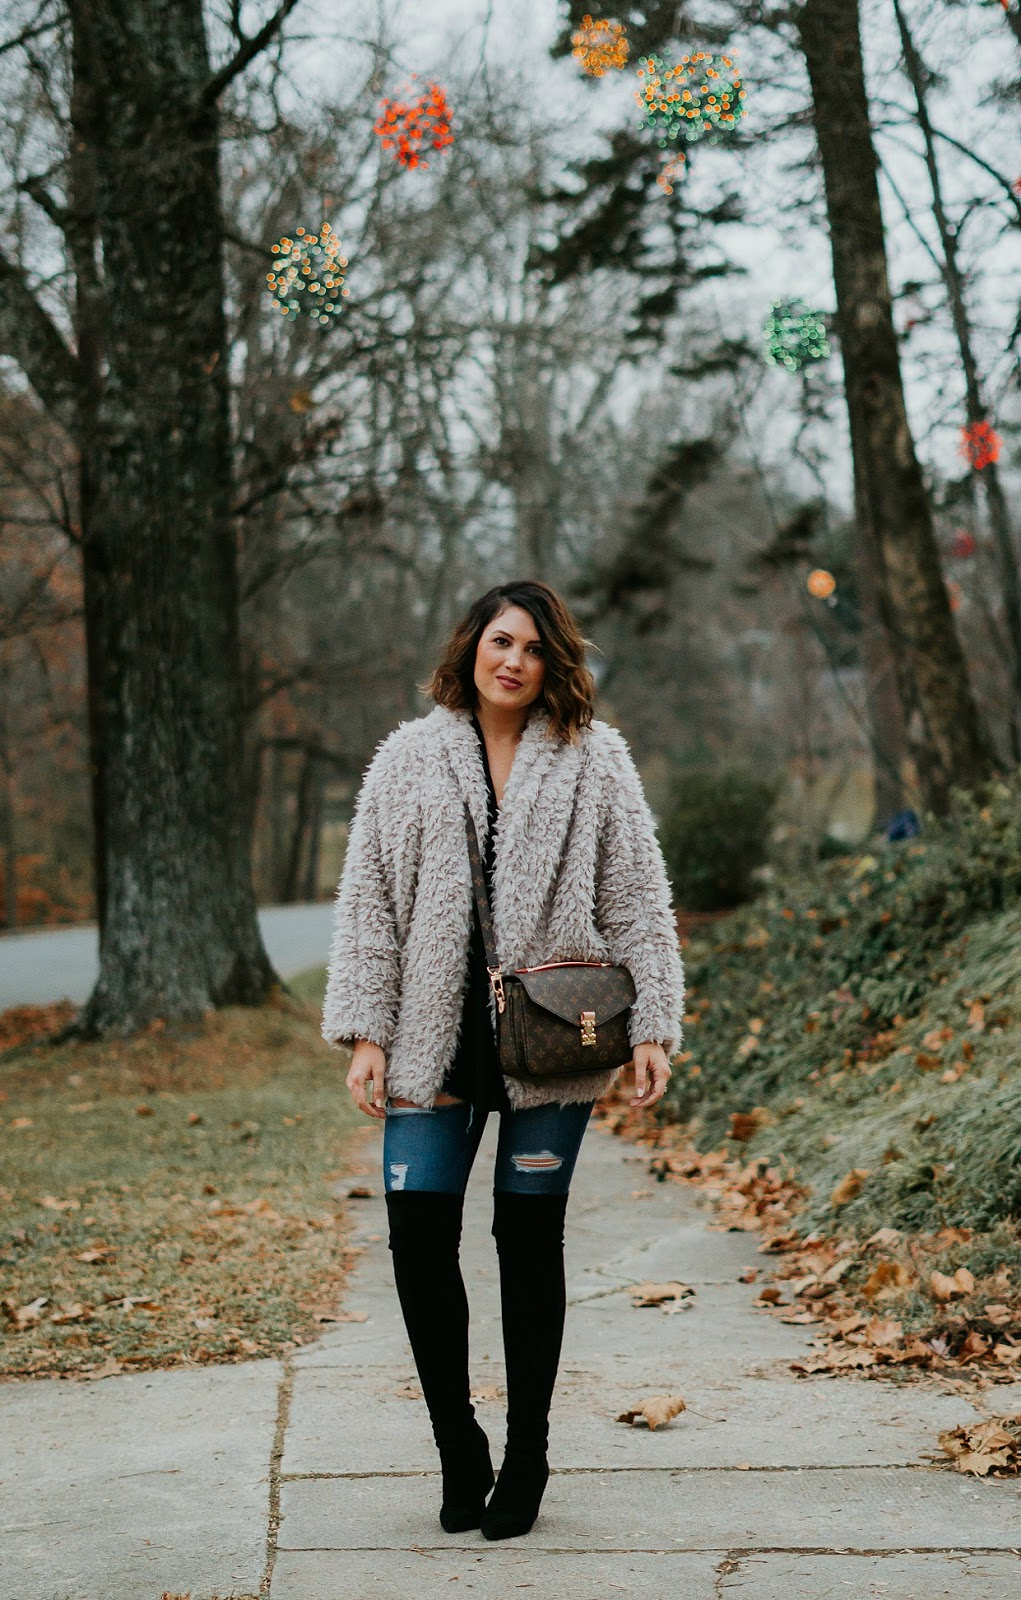 samantha brooke, teddy coat outift, xo samantha brooke, life and messy hair, nc photography, sam brooke photo, nc blogger, louis vuitton pochette metis, louis vuitton crossbody, over the knee boots goodnight macaroon